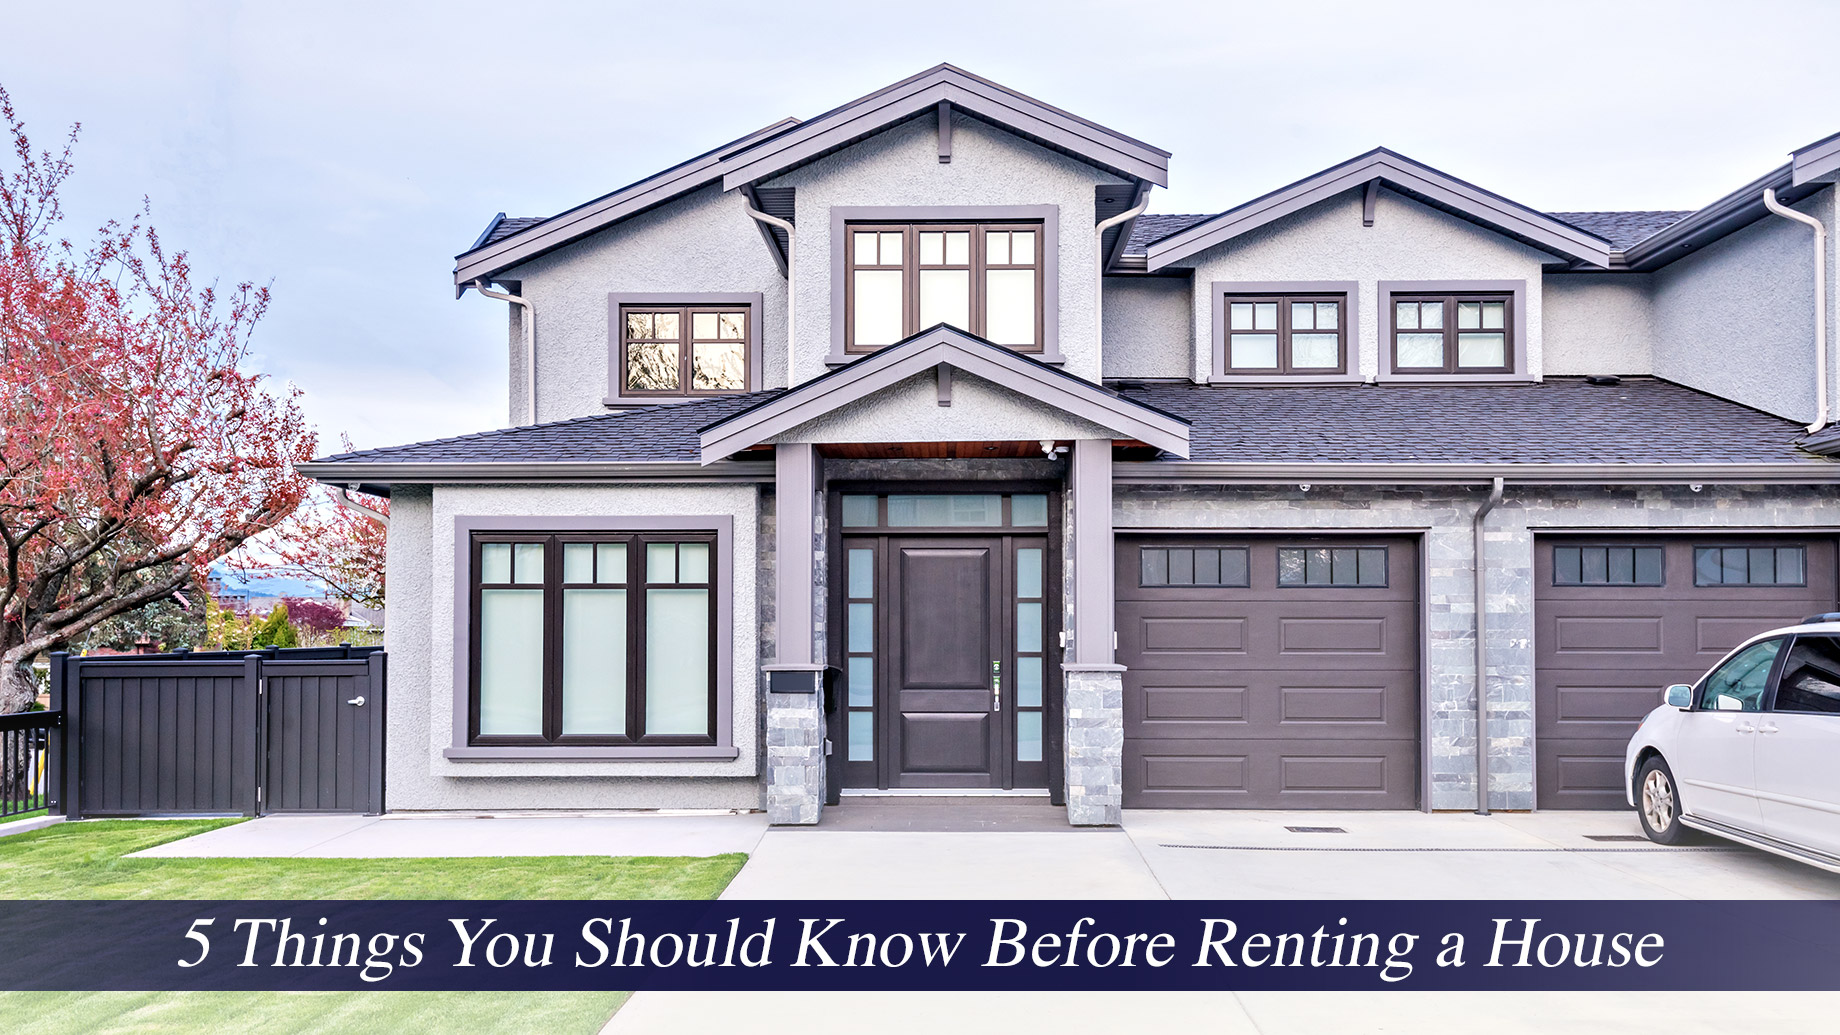 5 Things You Should Know Before Renting a House